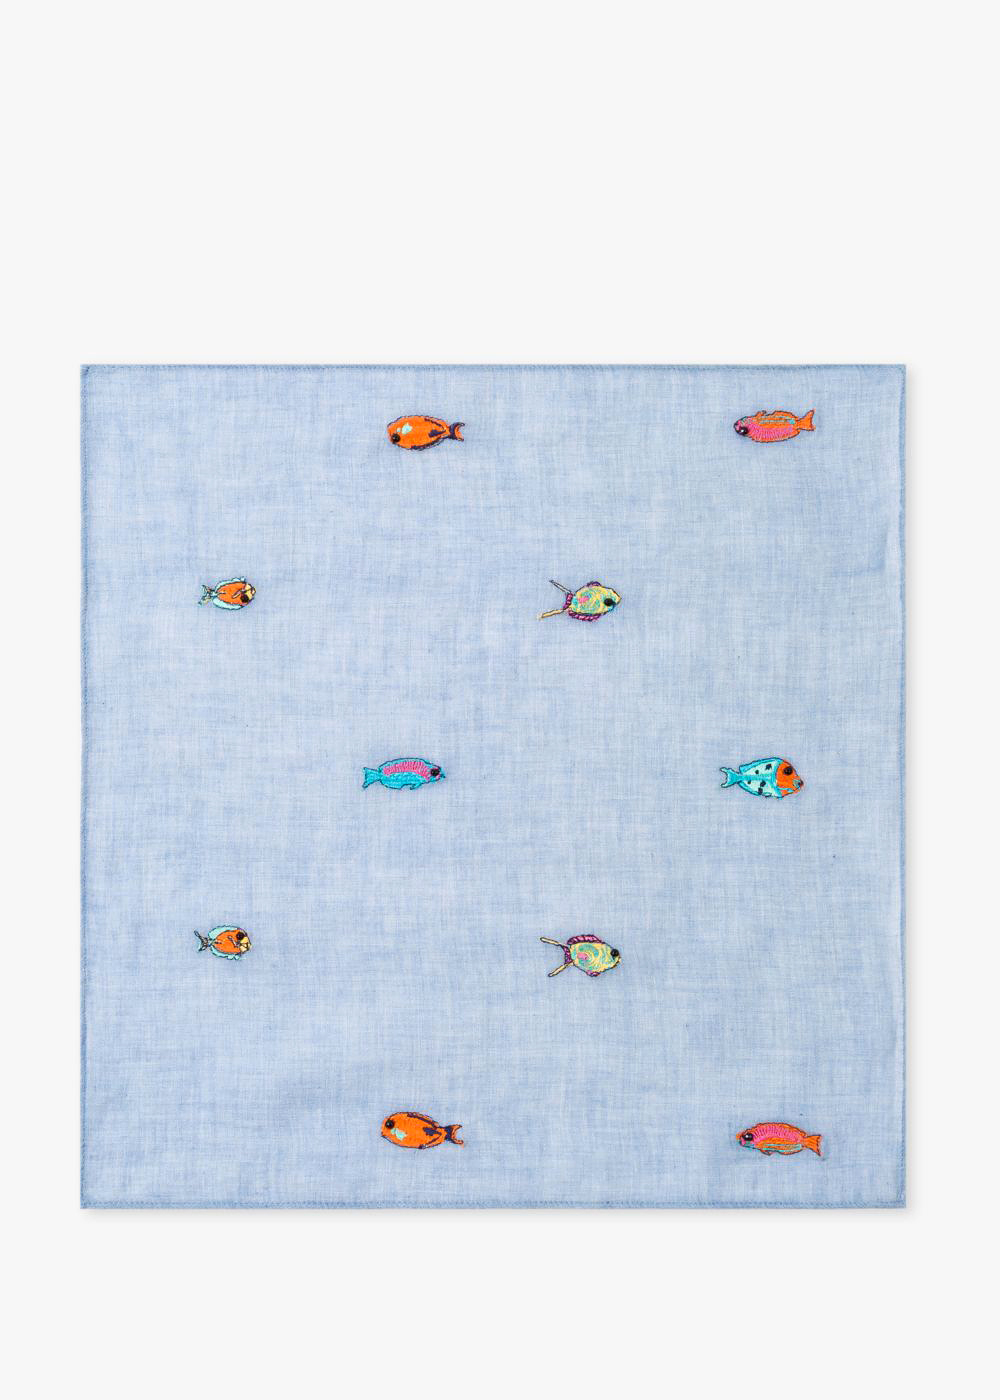 cotton anniversary gift fish pocket square